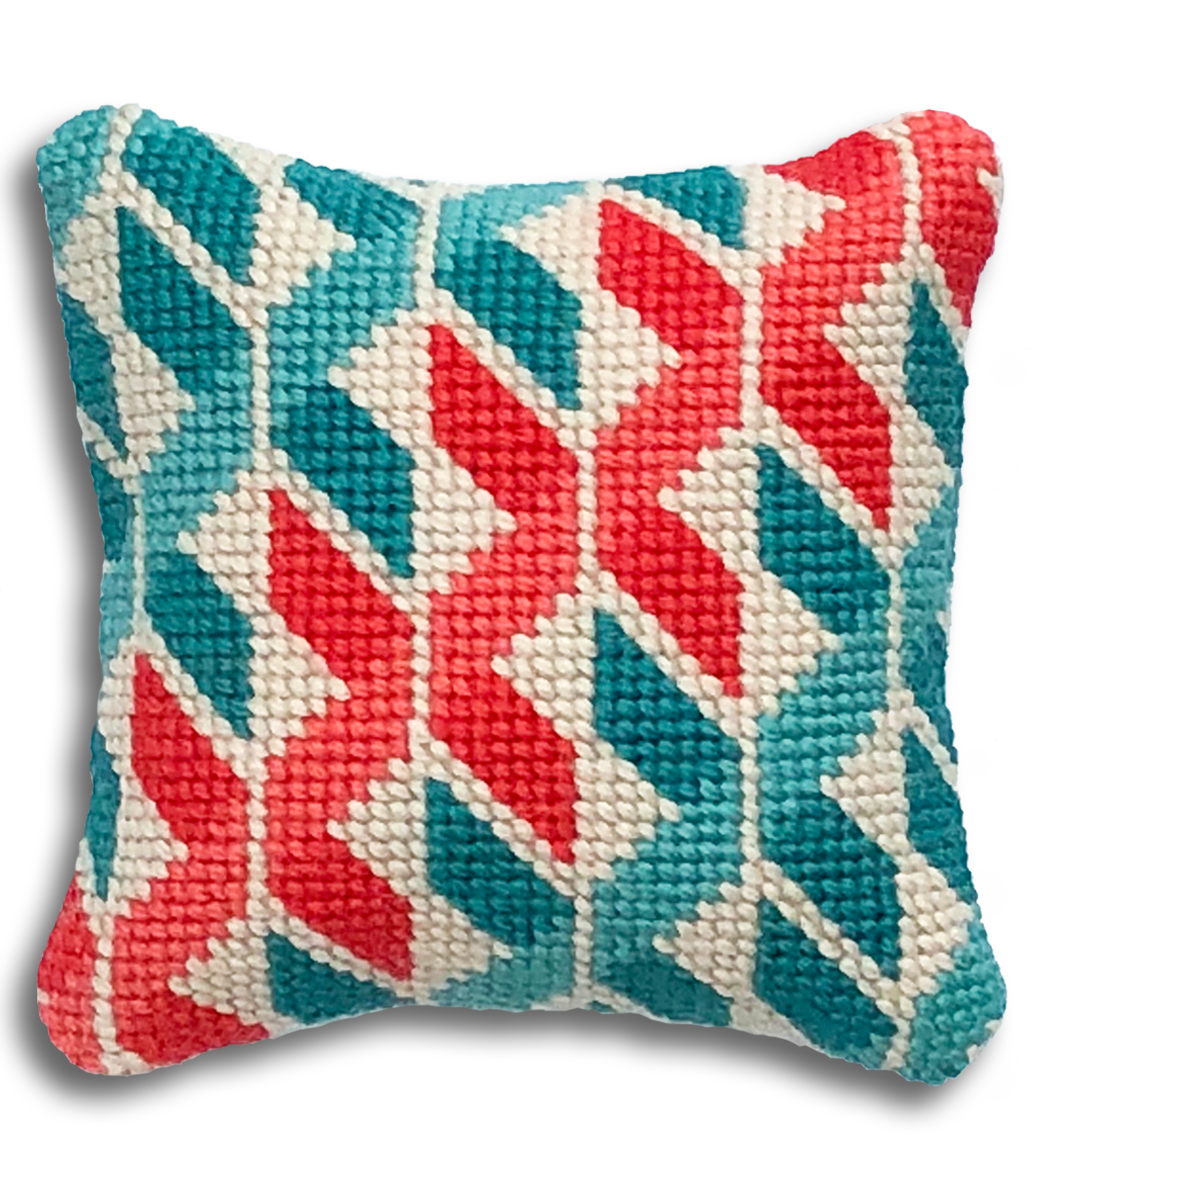 Geometric Twists mini kit  Turquoise and coral colourway  £16  (includes free UK postage)